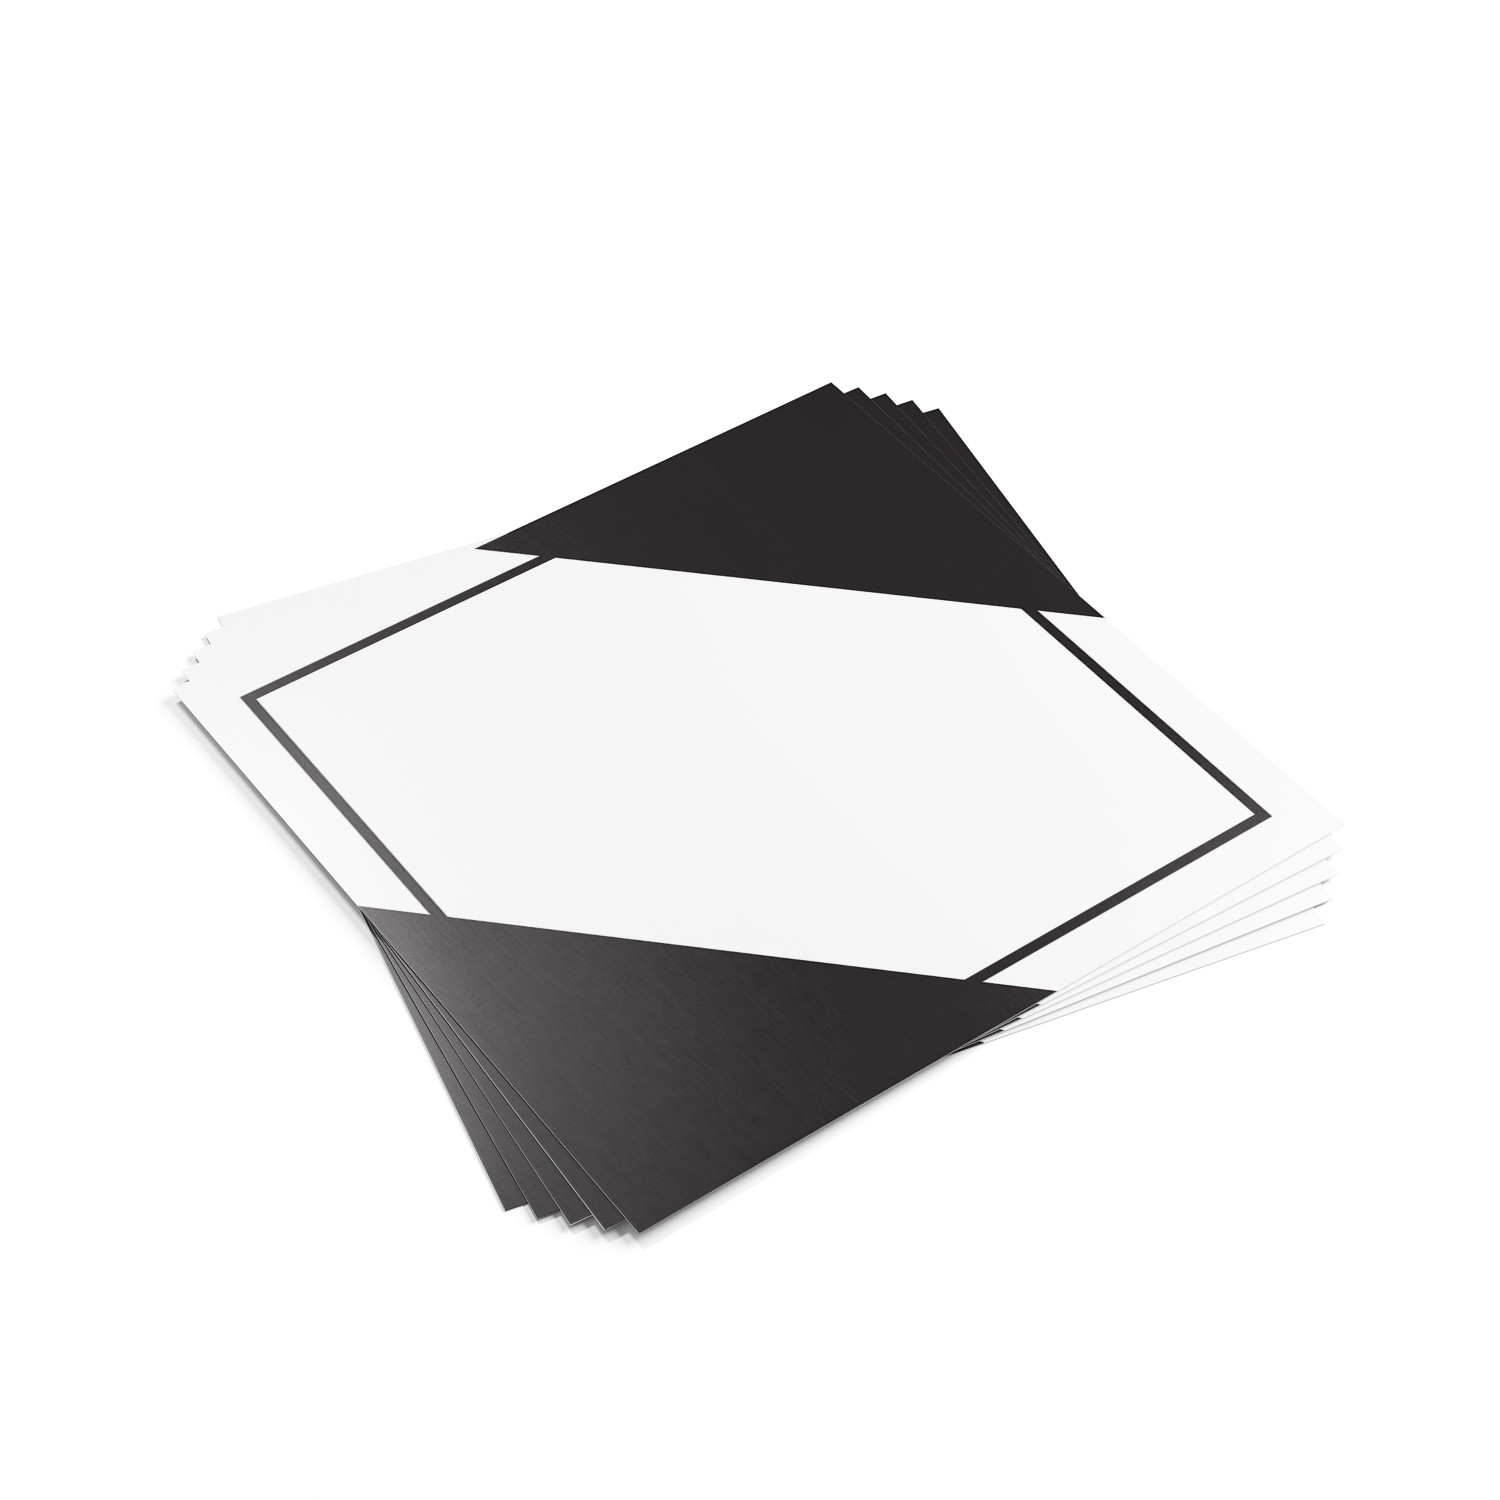 """TOTALPACK® 10 3/4 x 10 3/4"""" - Placard """"Limited Quantity Blank"""" 25 Units"""